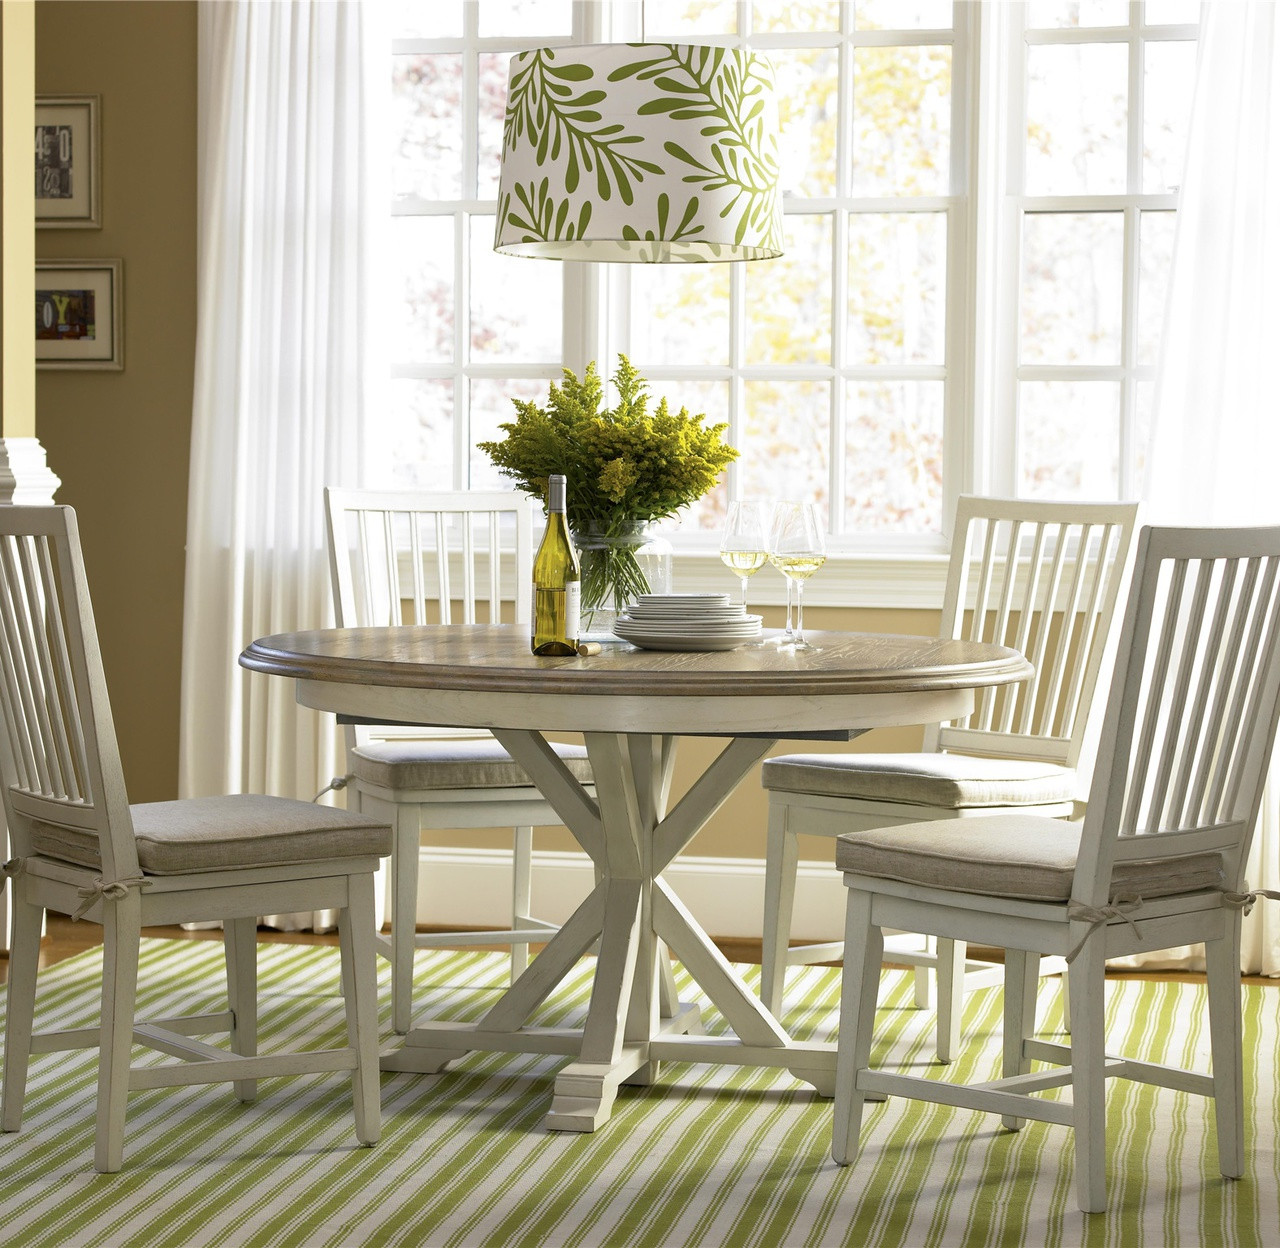 Awesome Coastal Beach White Oak Round Dining Room Set